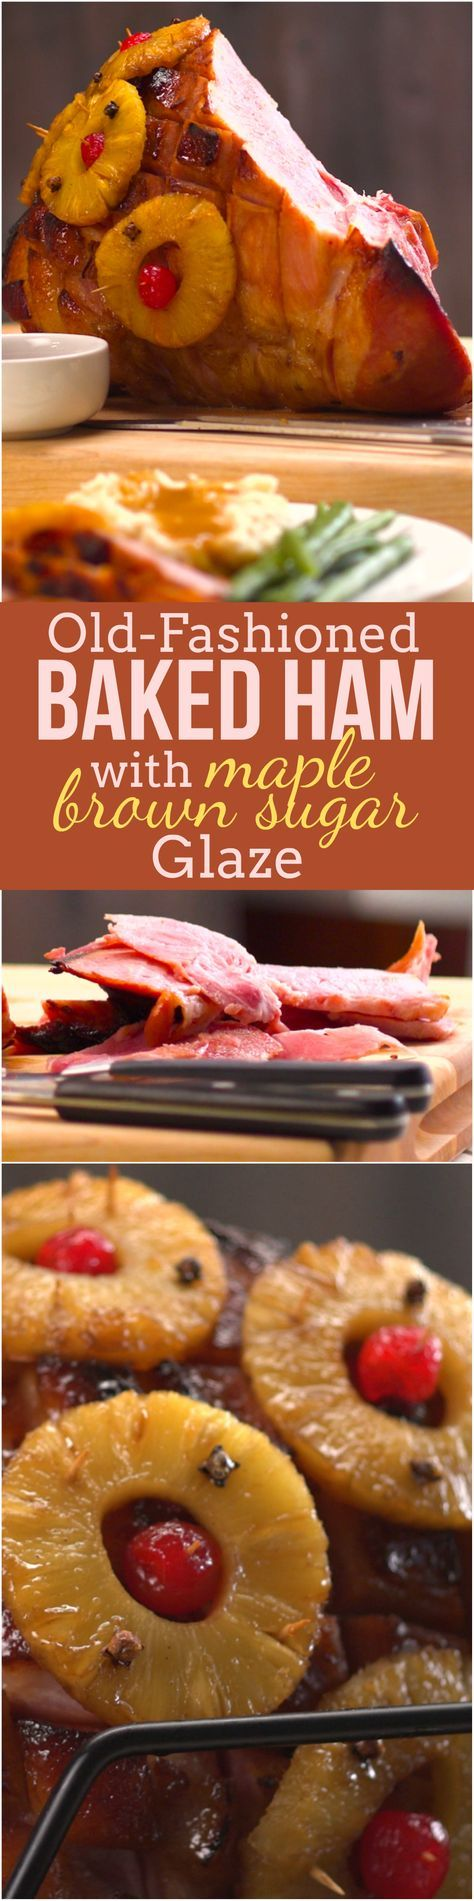 Make your holiday centerpiece this beautiful baked ham with pineapple, crispy edges, and a warmly spiced maple brown sugar glaze. Our recipe is a masterclass in everything you need to know to make baking a ham easy — we'll even show you how to turn the pineapple-spiked drippings into an amazing pan sauce.